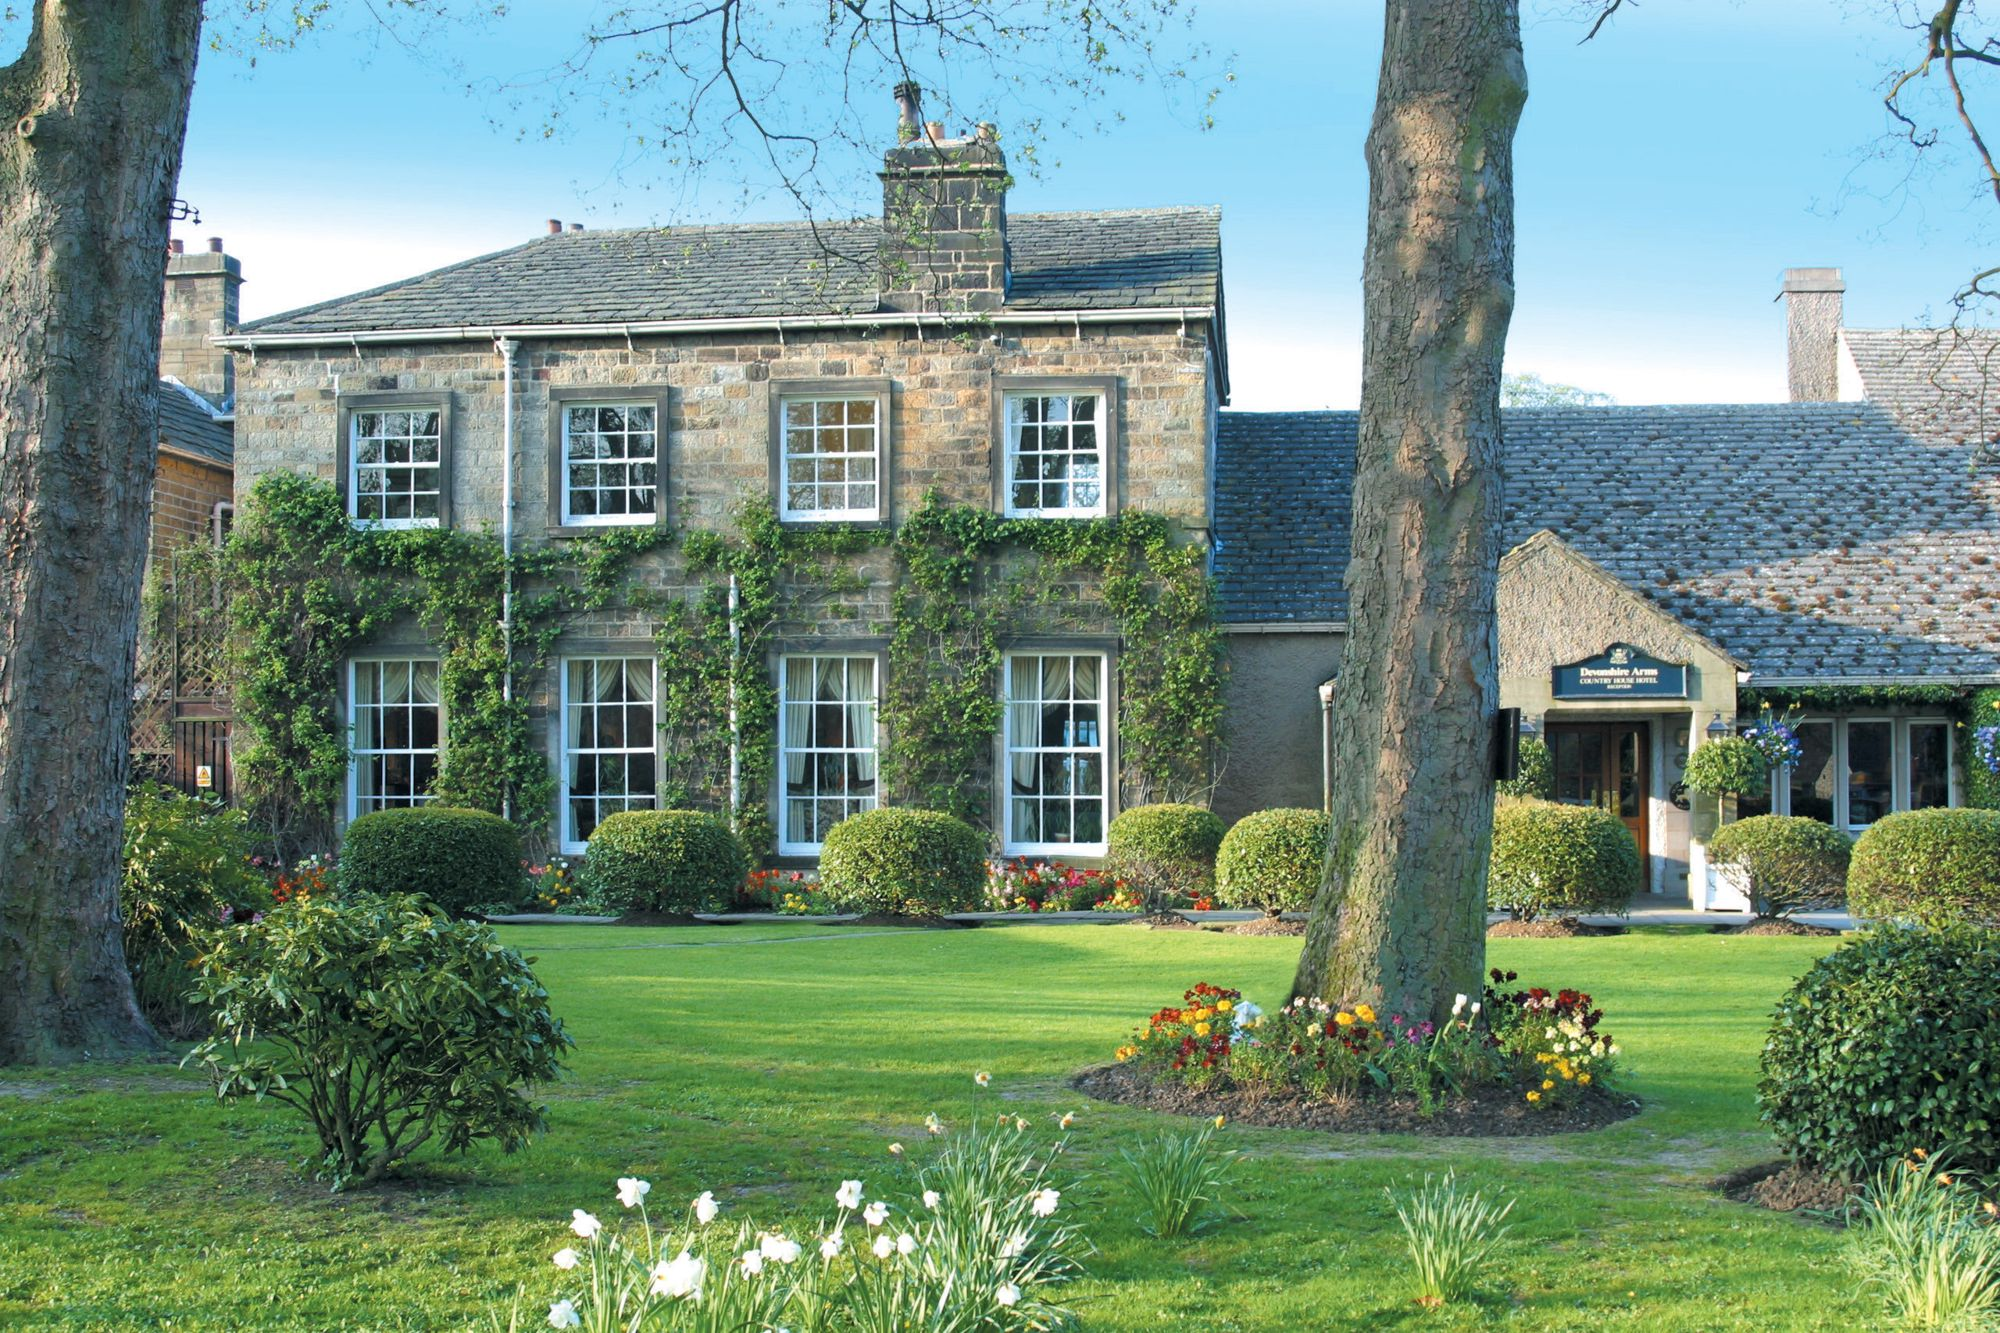 Hotels in Skipton holidays at Cool Places